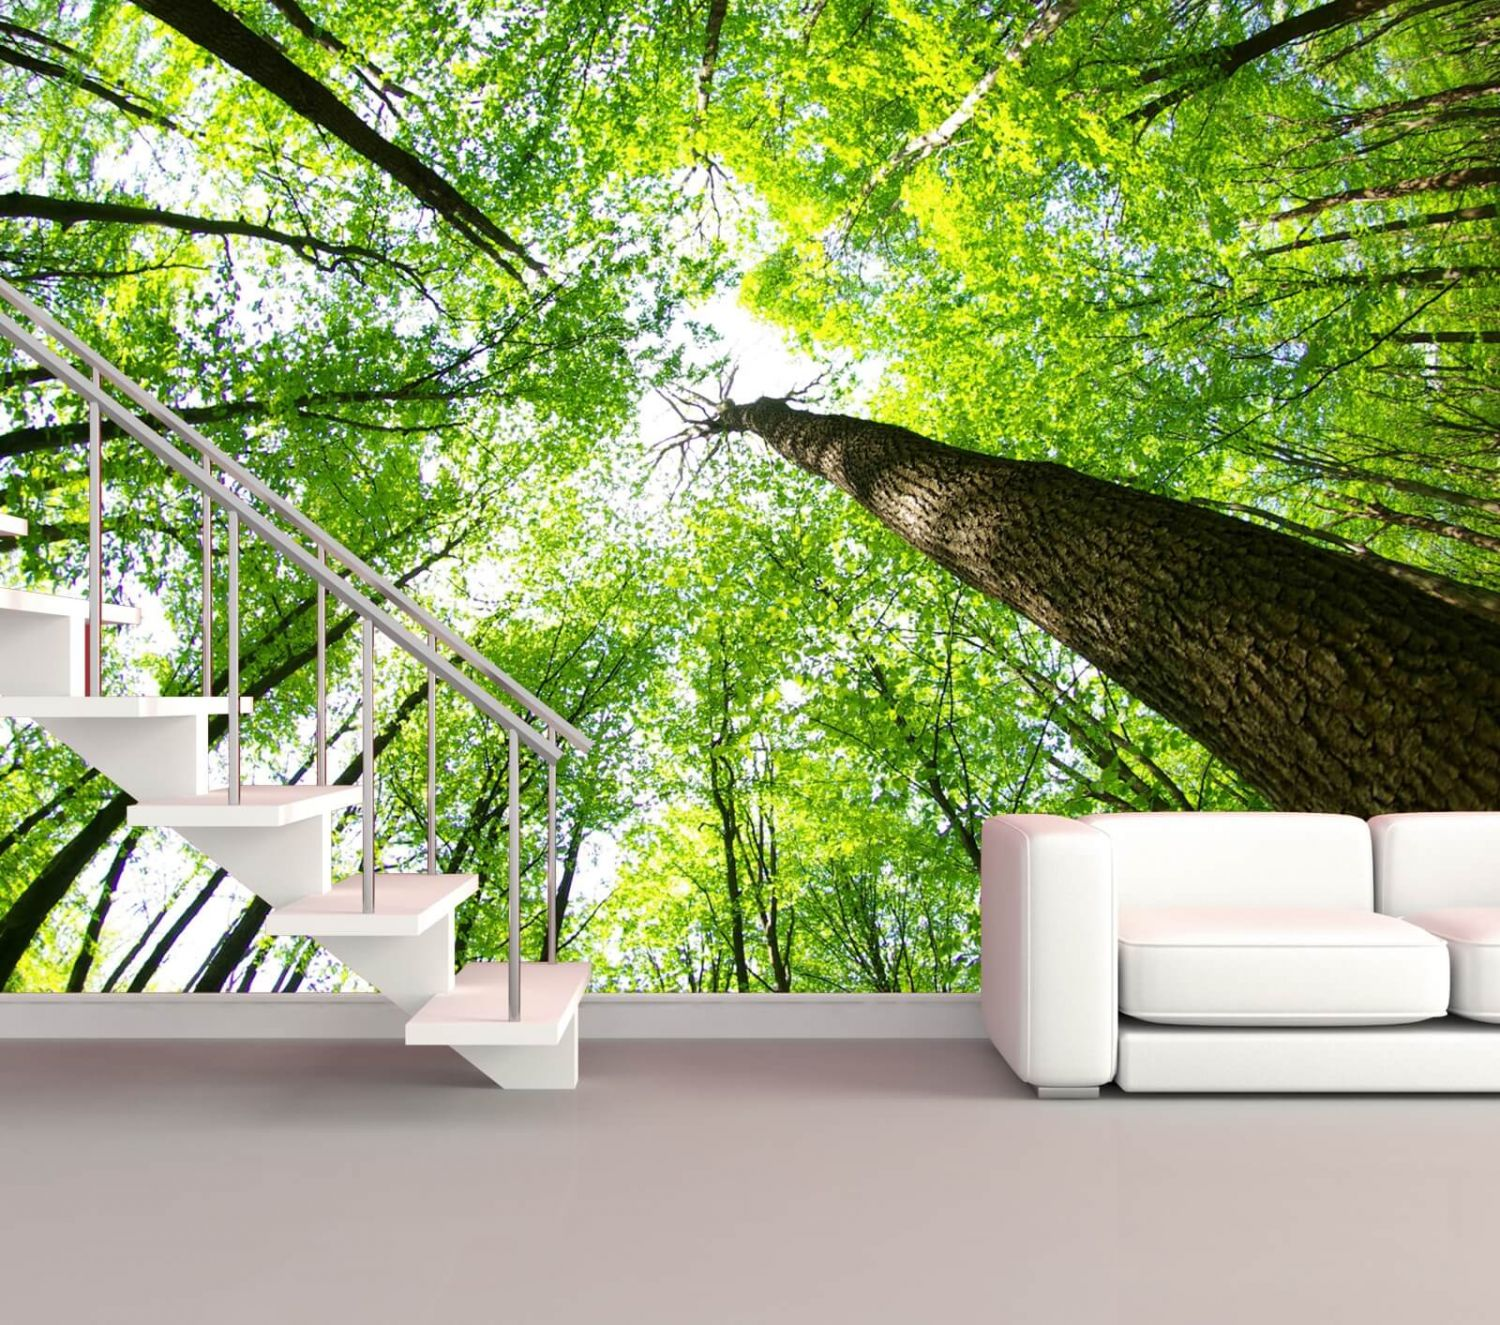 vlies xxl poster tapete fototapete natur wald b ume blick nach oben ebay. Black Bedroom Furniture Sets. Home Design Ideas